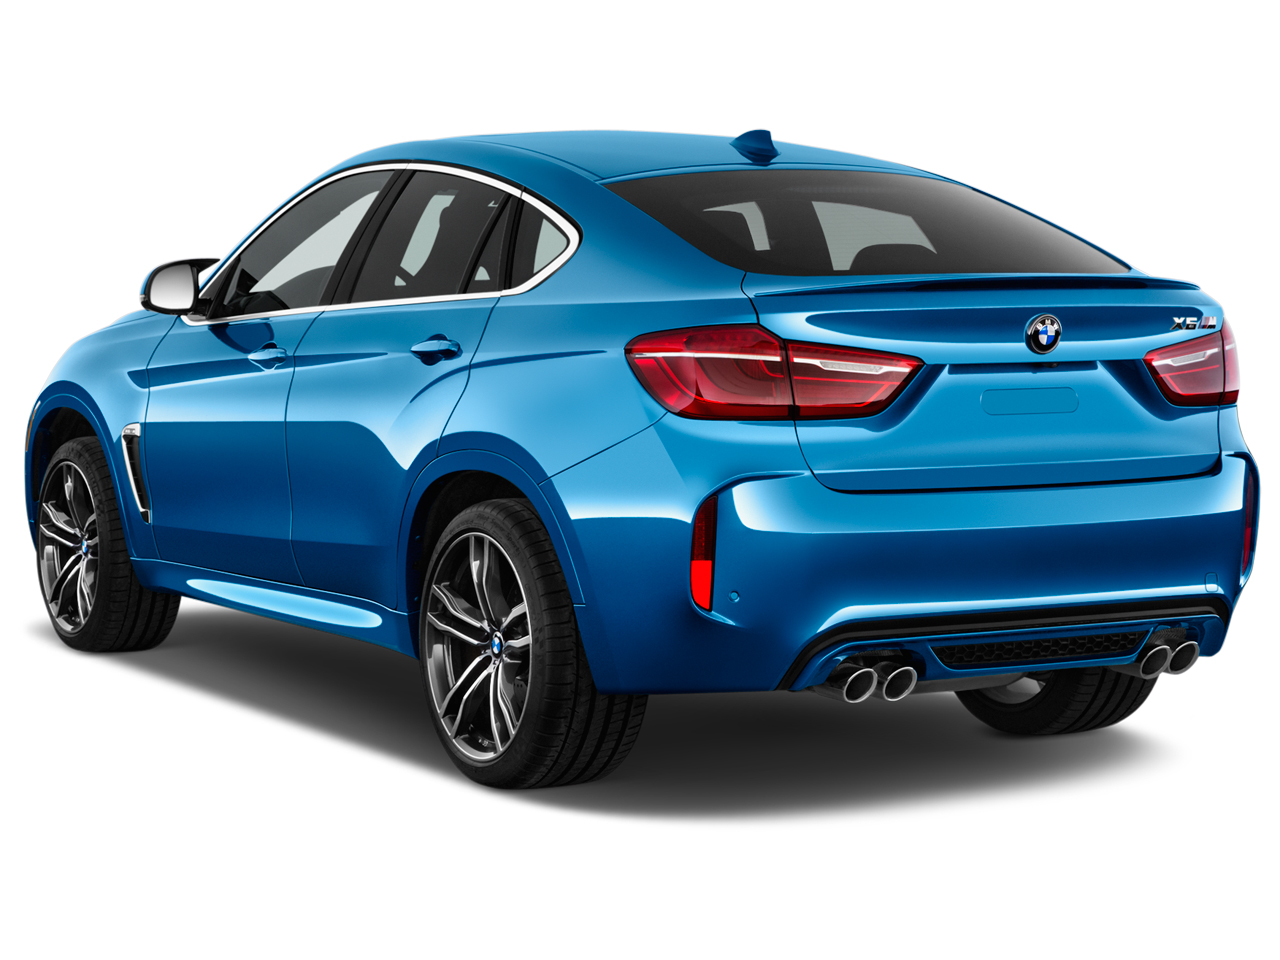 Bmw X6 M 2019 4 4t Xdrive In Uae New Car Prices Specs